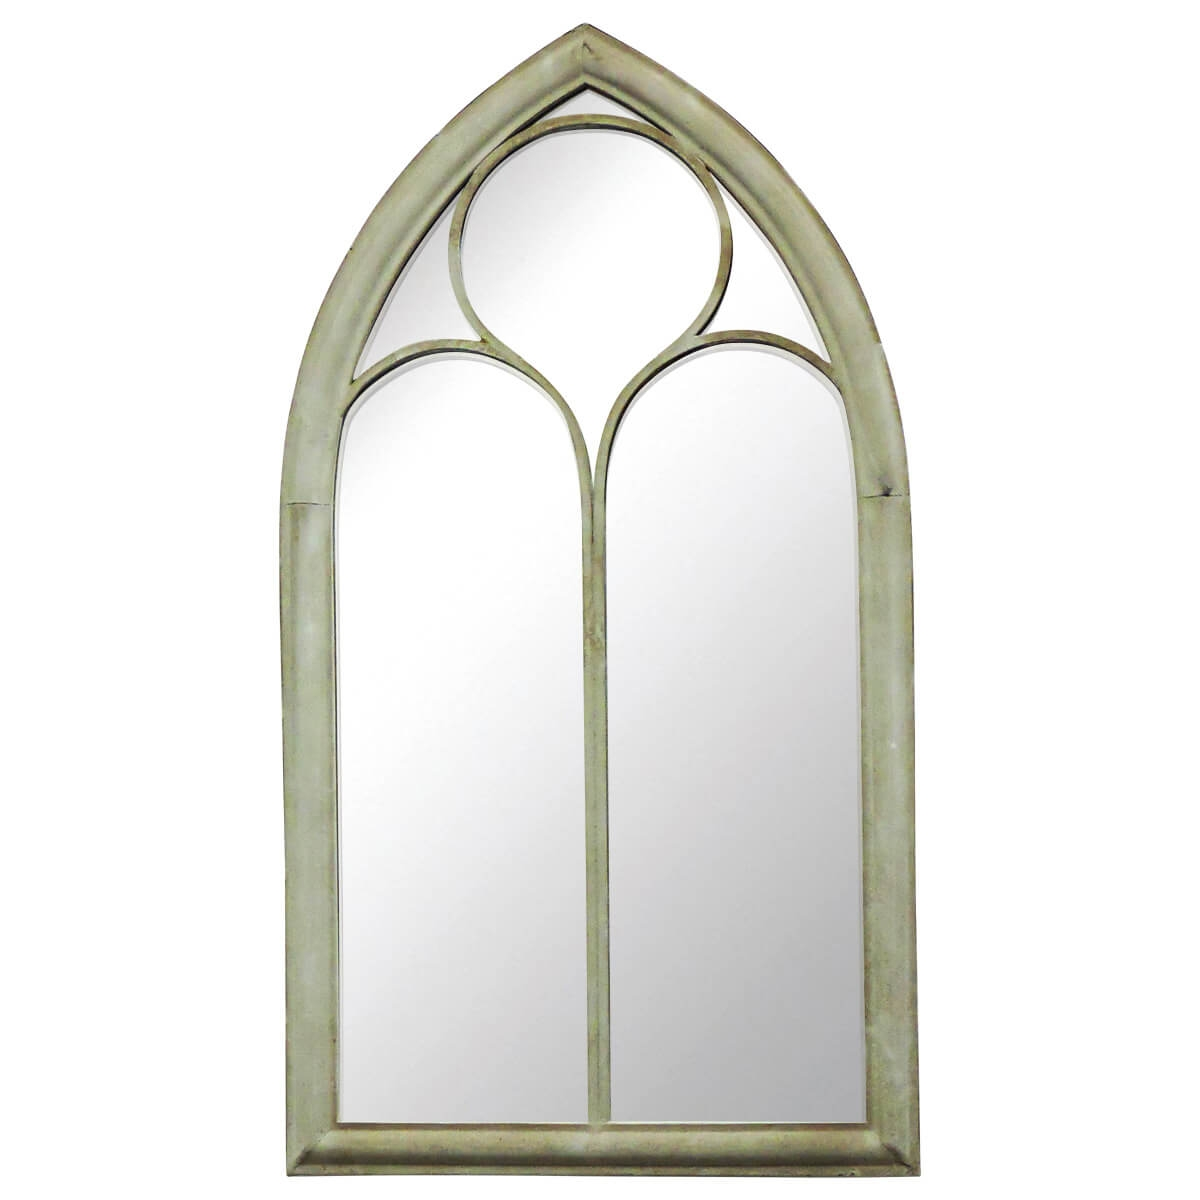 Charles Bentley Chapel Garden Mirror Buydirect4u Pertaining To Gothic Style Mirrors (Image 4 of 15)